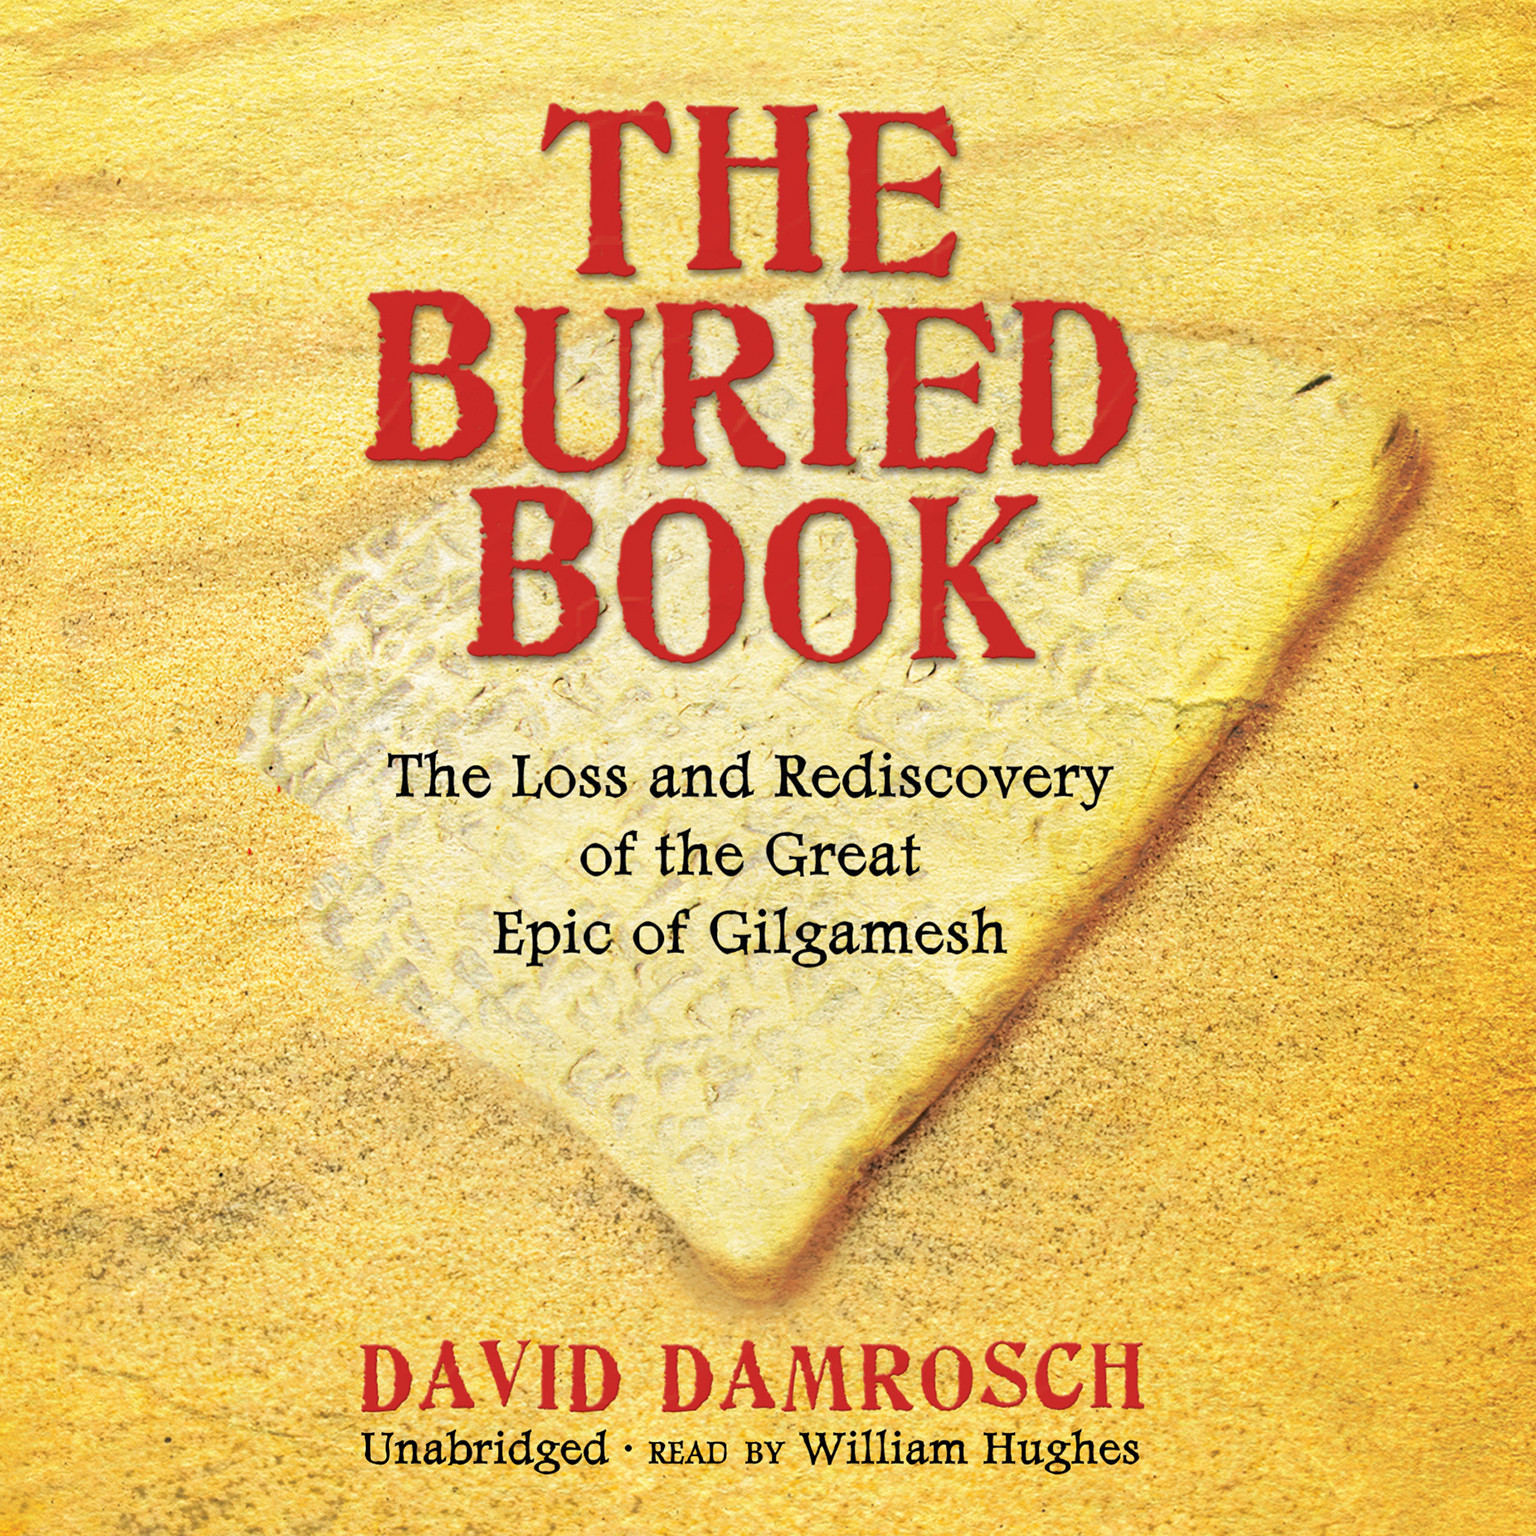 Printable The Buried Book: The Loss and Rediscovery of the Great Epic of Gilgamesh Audiobook Cover Art